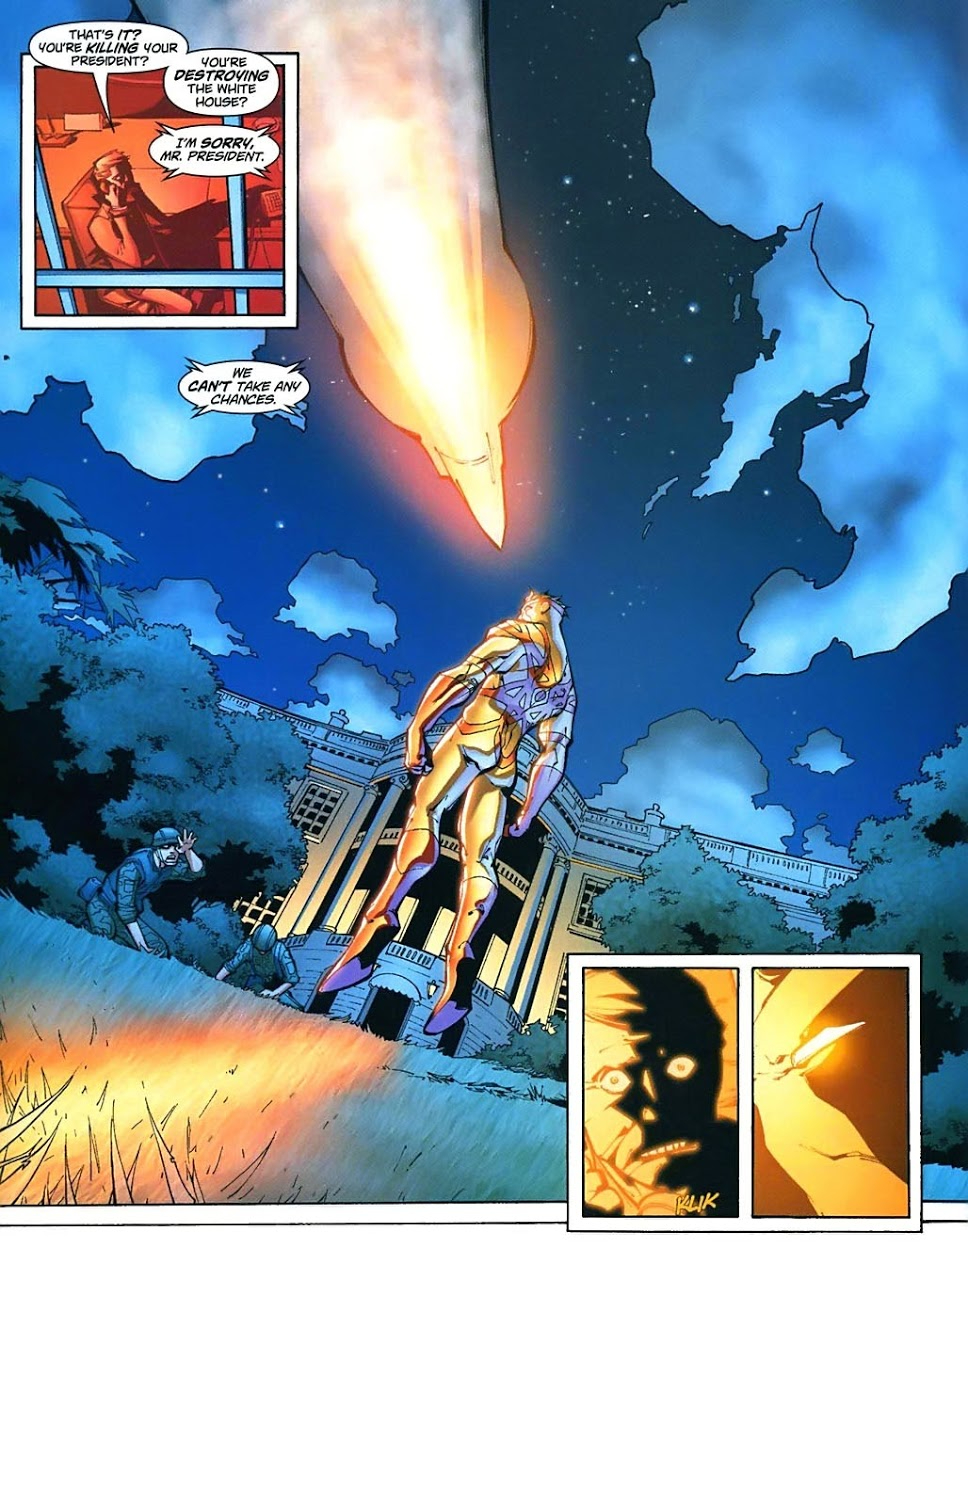 In 'Captain Atom: Armageddon' #3, Captain Atom faces the U.S. Army at the White House as he seeks the President's help.